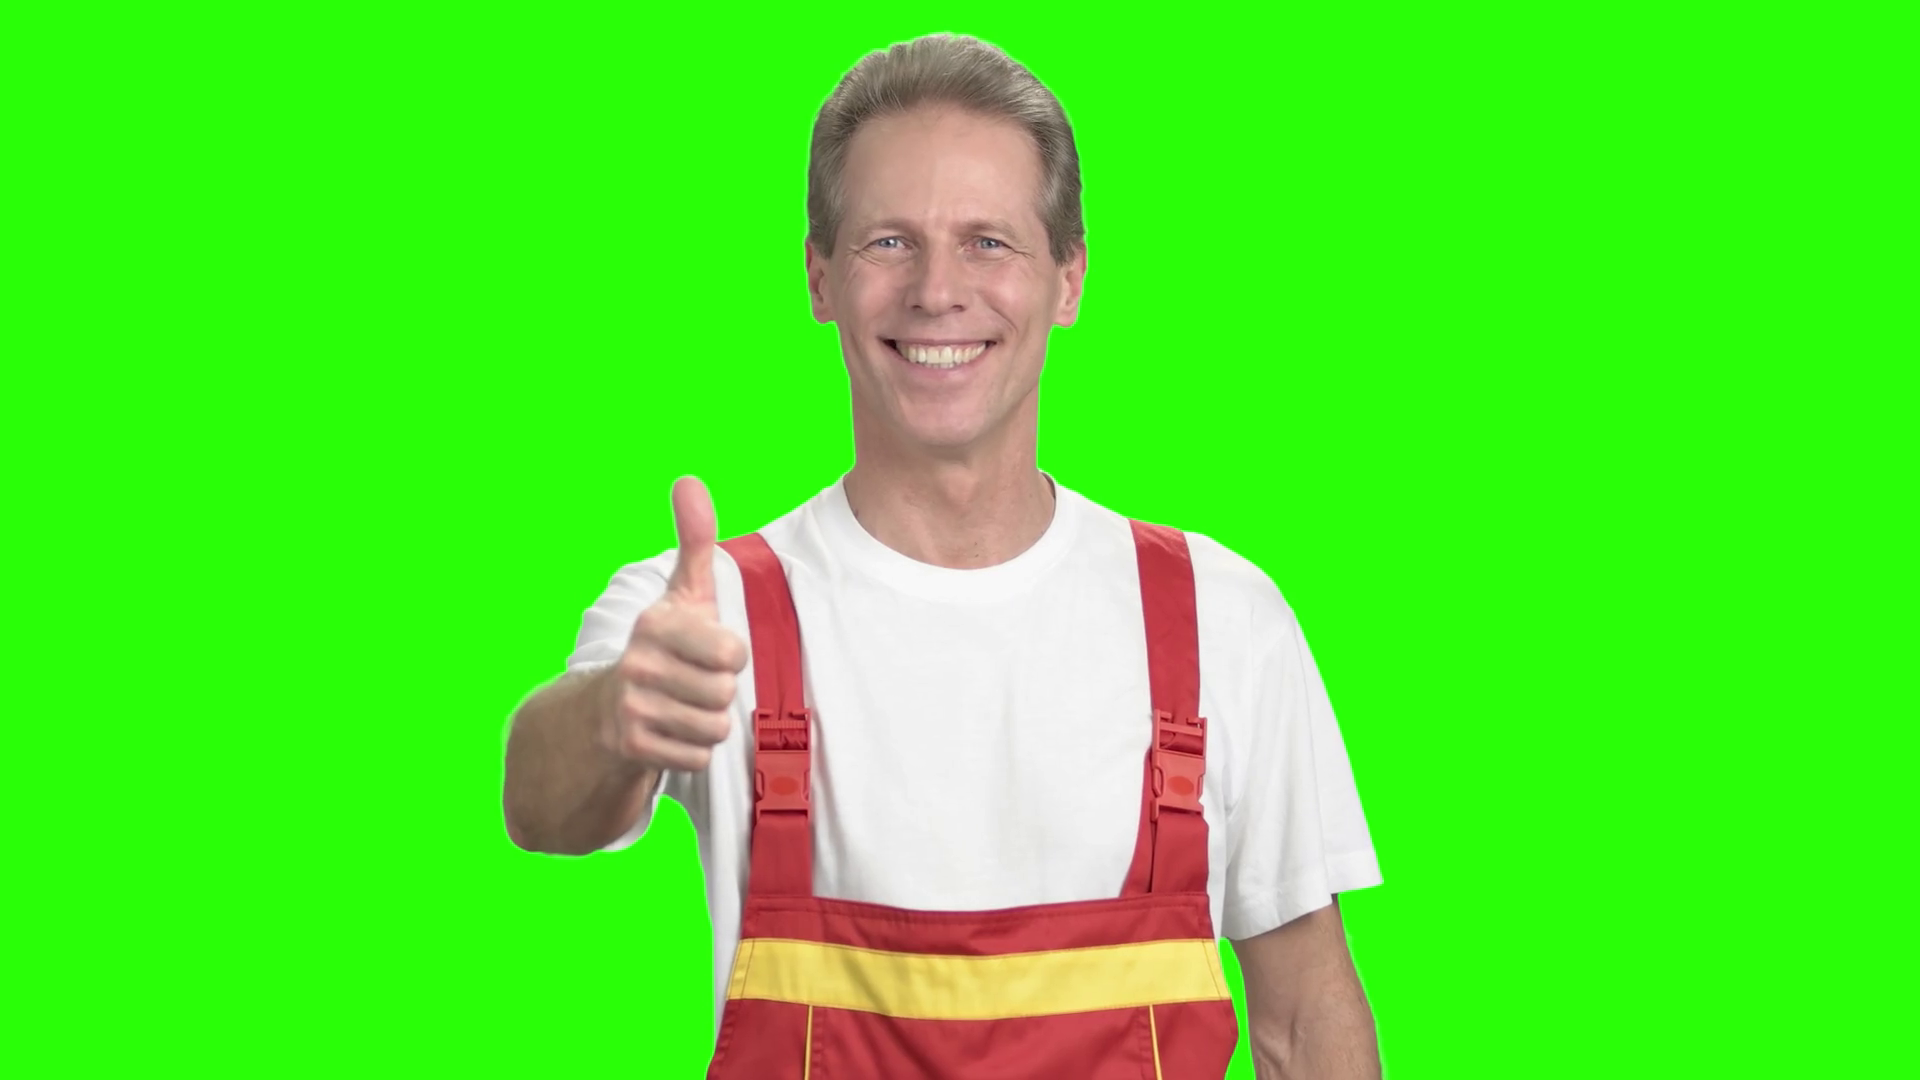 Two Thumbs Up PNG HD - 136105